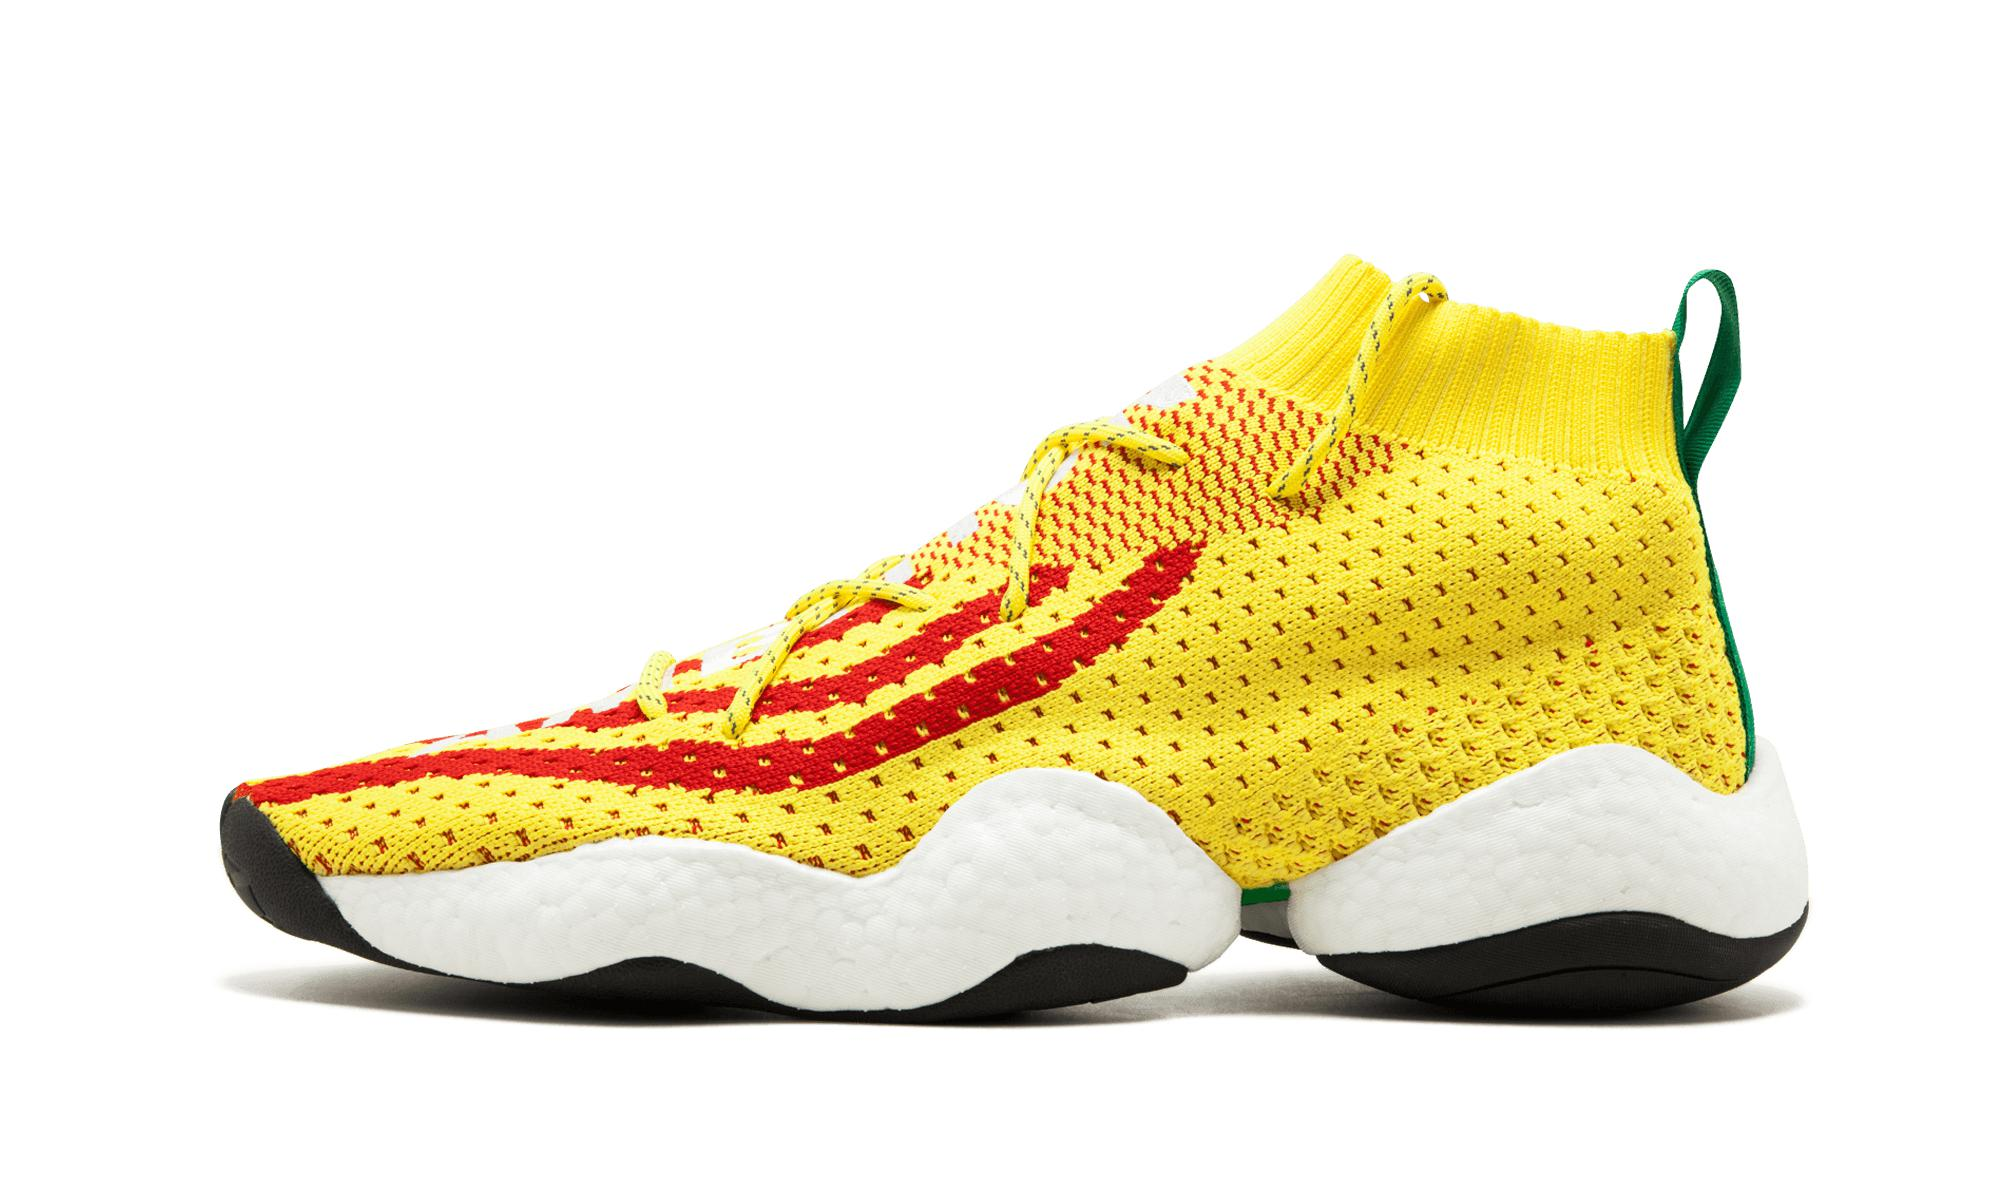 new arrival 014fb 3f516 Adidas - Yellow Crazy Byw Pharrell Williams for Men - Lyst. View fullscreen